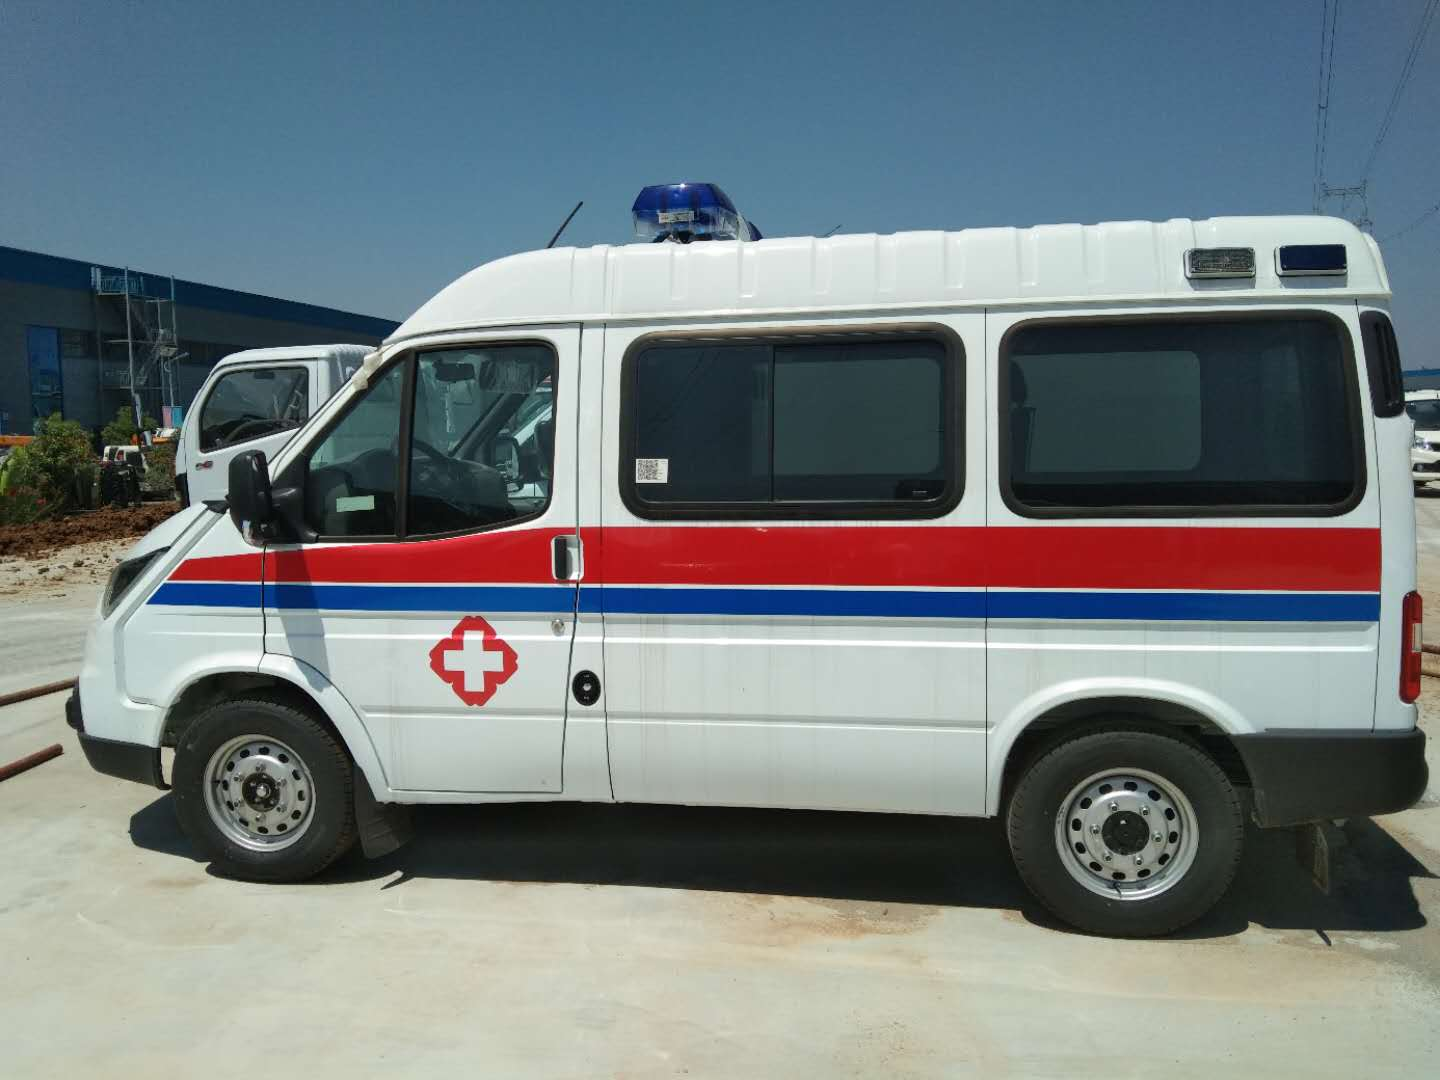 New Ambulance Vehicles for Fighting COVID-19_2